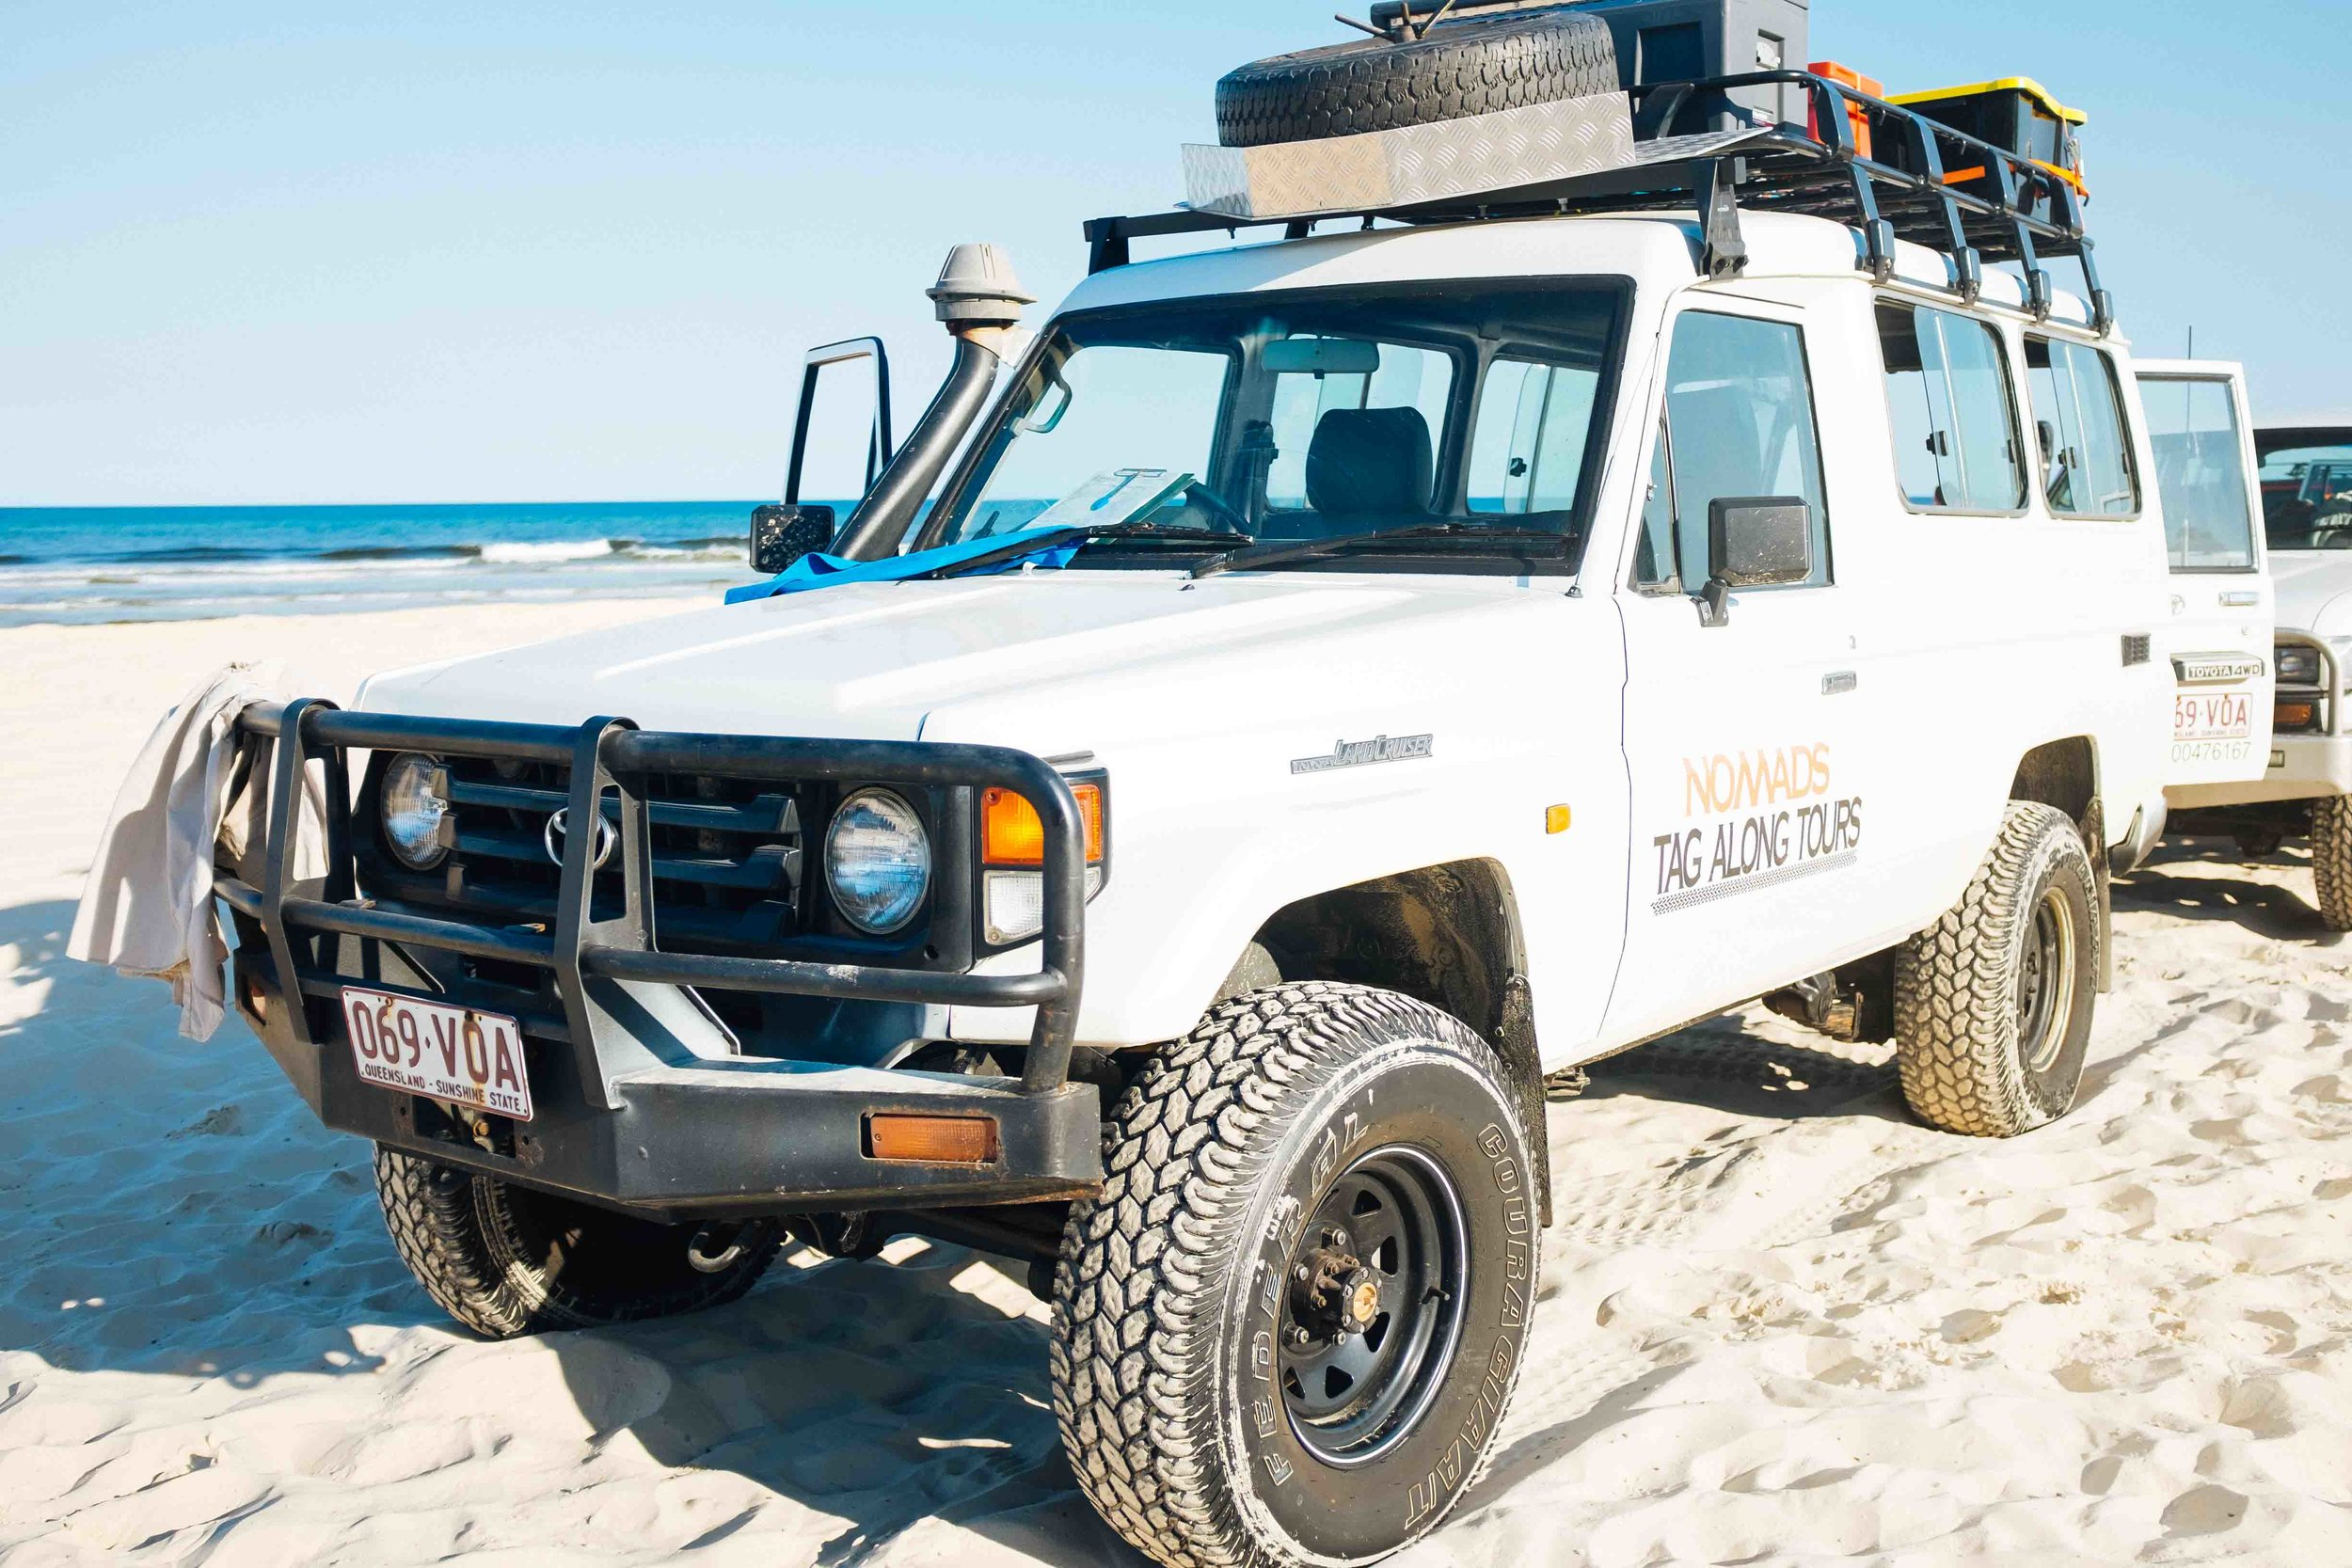 fraser island tag along tour